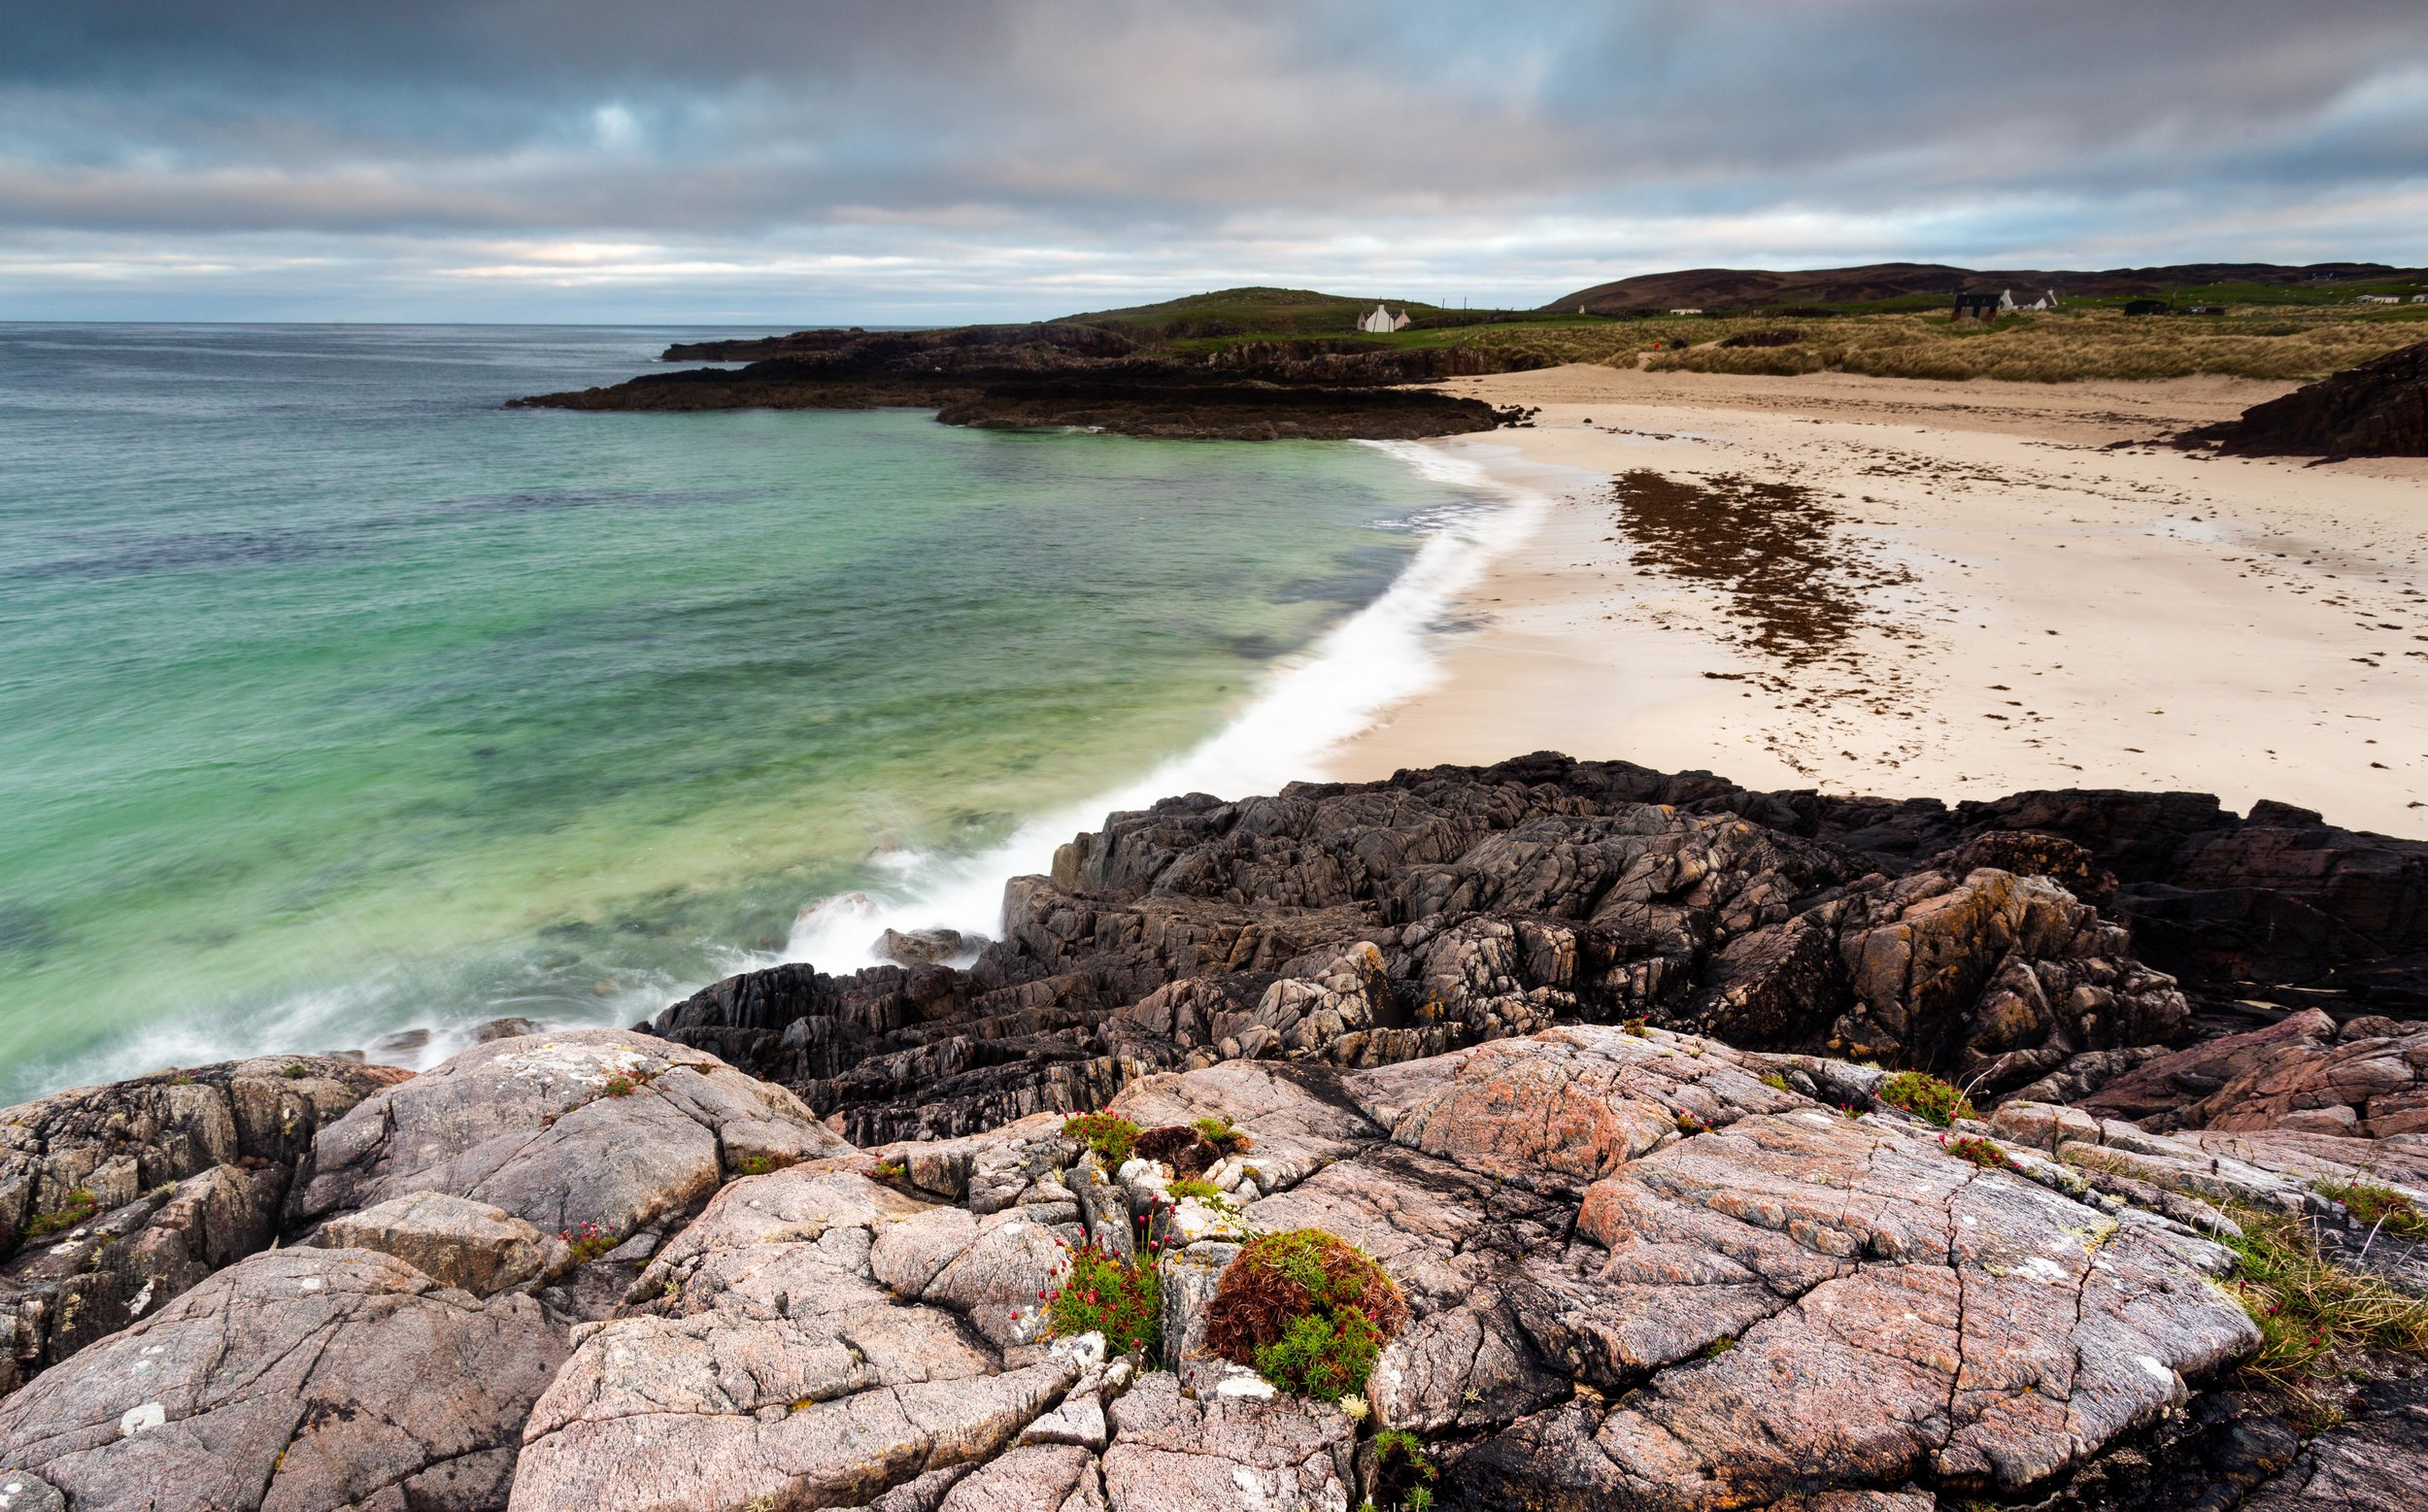 Scotland's West Coast March 2020 - Soft sandy beaches and beautiful turquoise coastlines are just some of the attractions on Scotlands's famous West Coast. This 3 day workshop also takes in secluded lochs and travels along part of the famous North Coast 500 route.